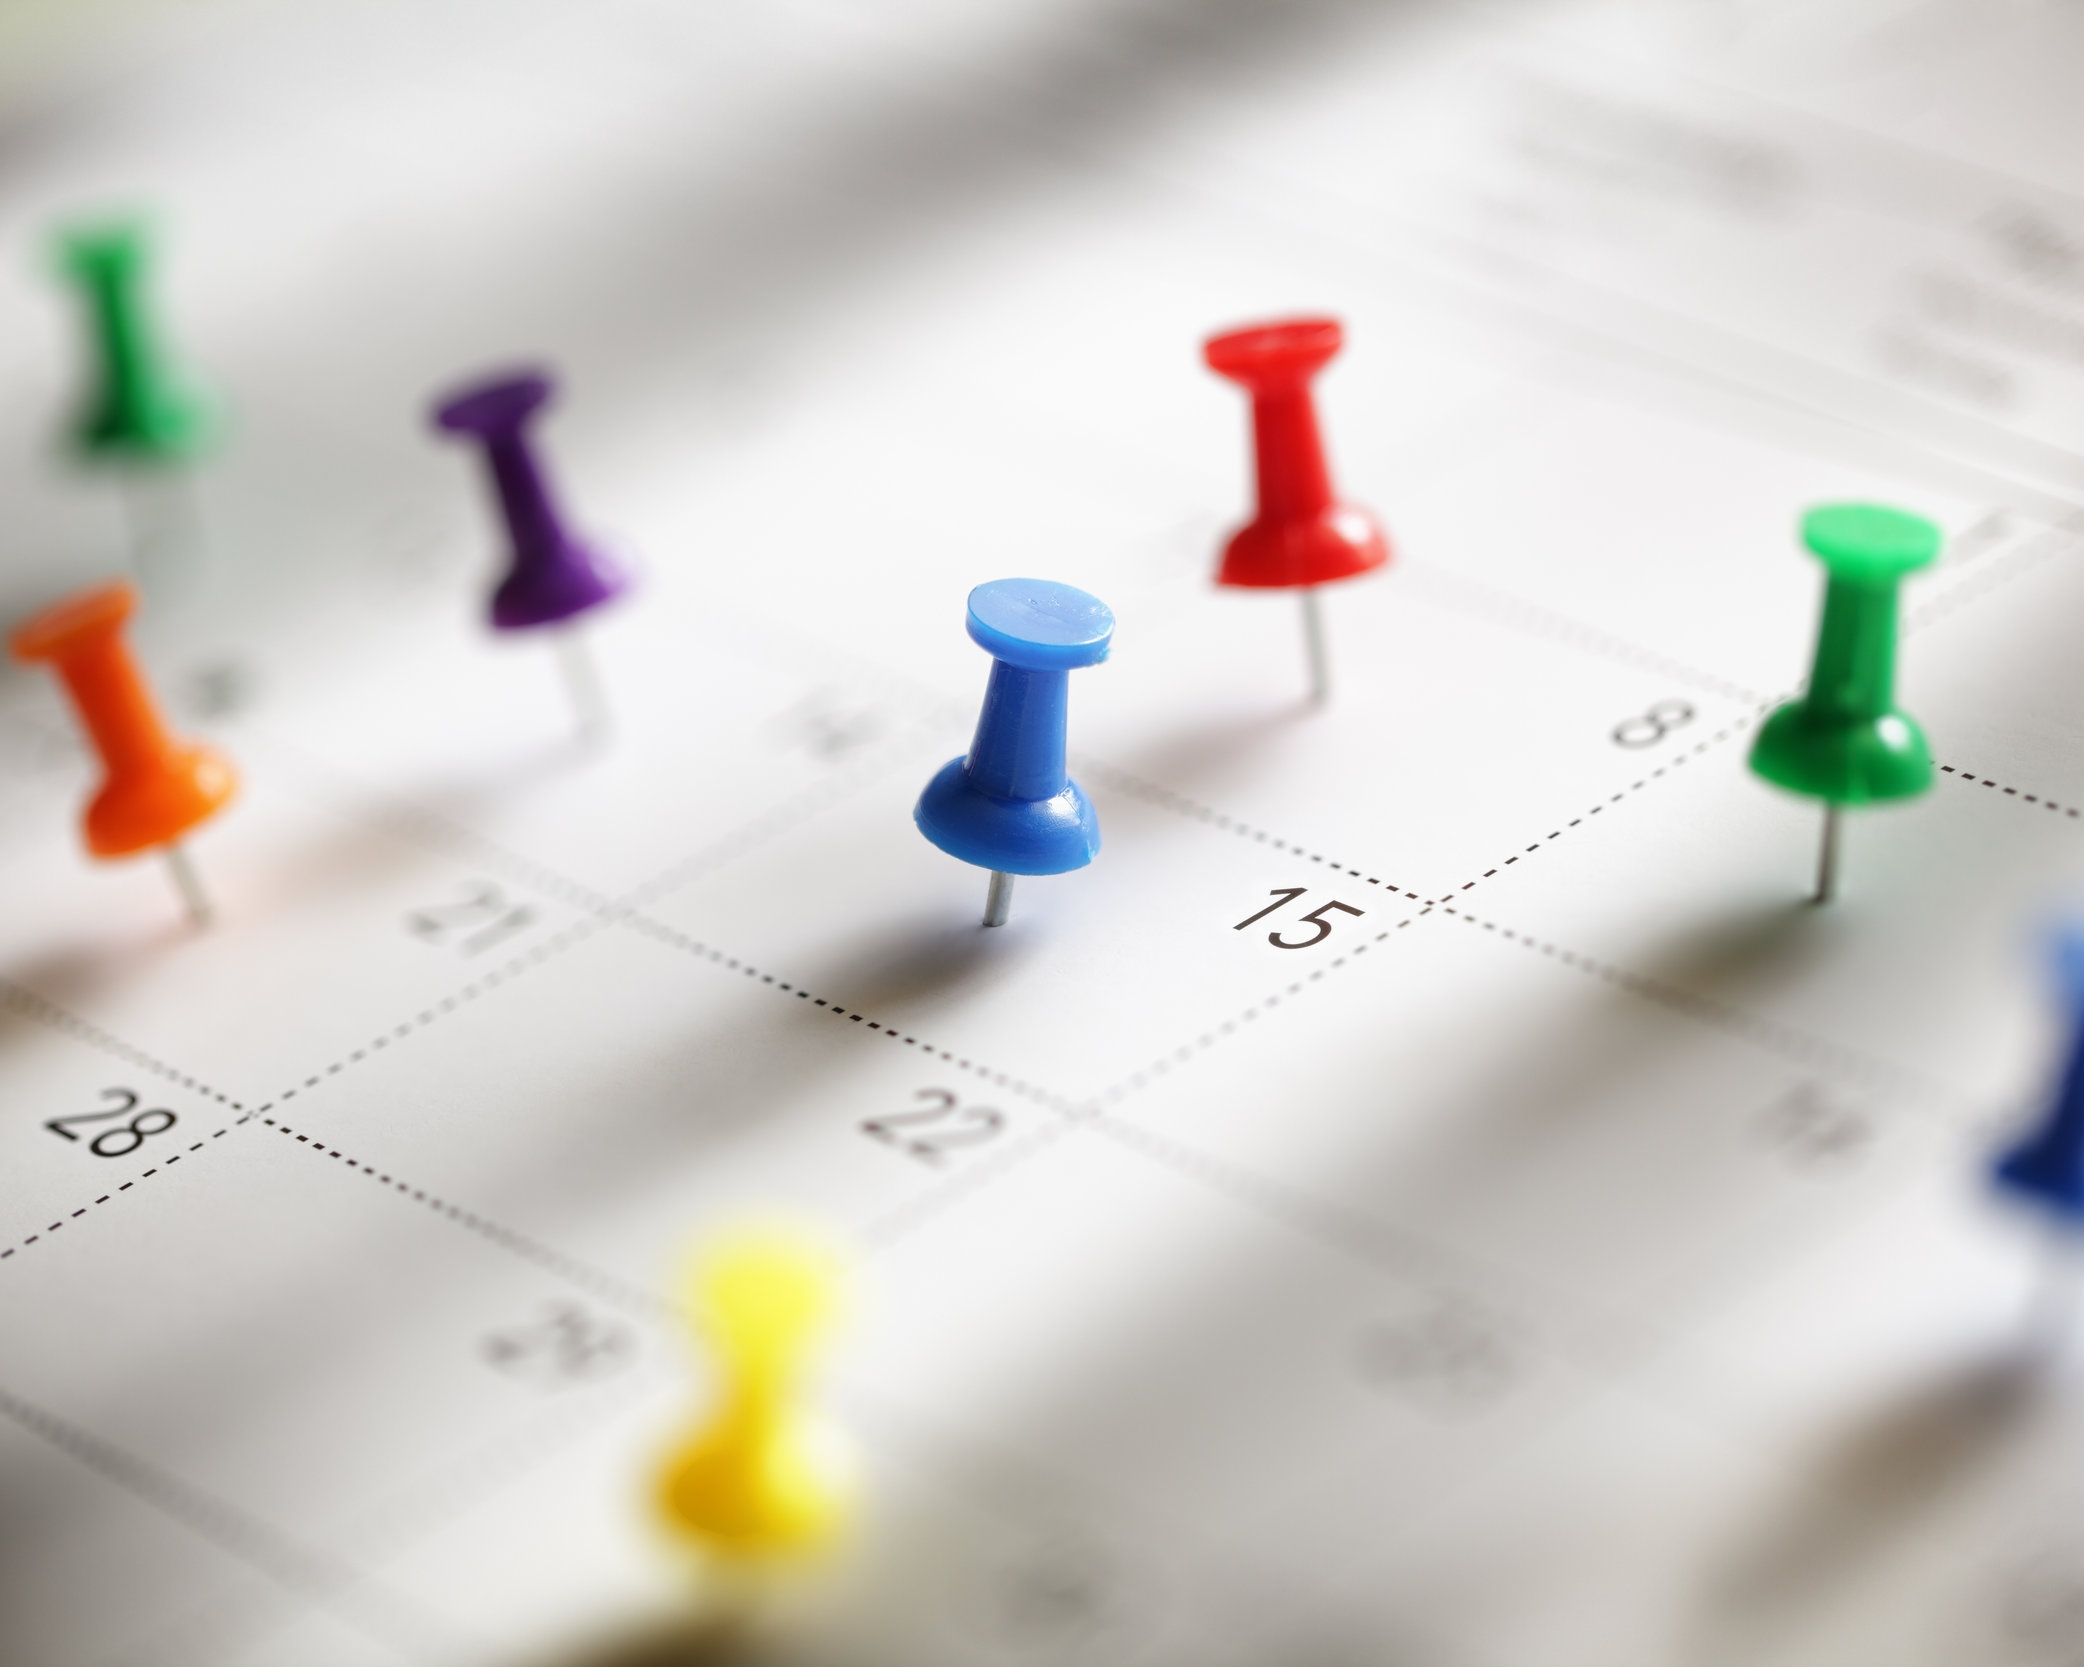 "Country Compliance Calendar - The India CORE ""country compliance calendar"" identifies and describes India's health & safety regulatory compliance events or activities, and the frequency with which those events or activities must be conducted.Country Compliance Calendars come free of charge with the purchase of a corresponding Country Legal Register or Country Audit Checklist. Click the button below for more details!"